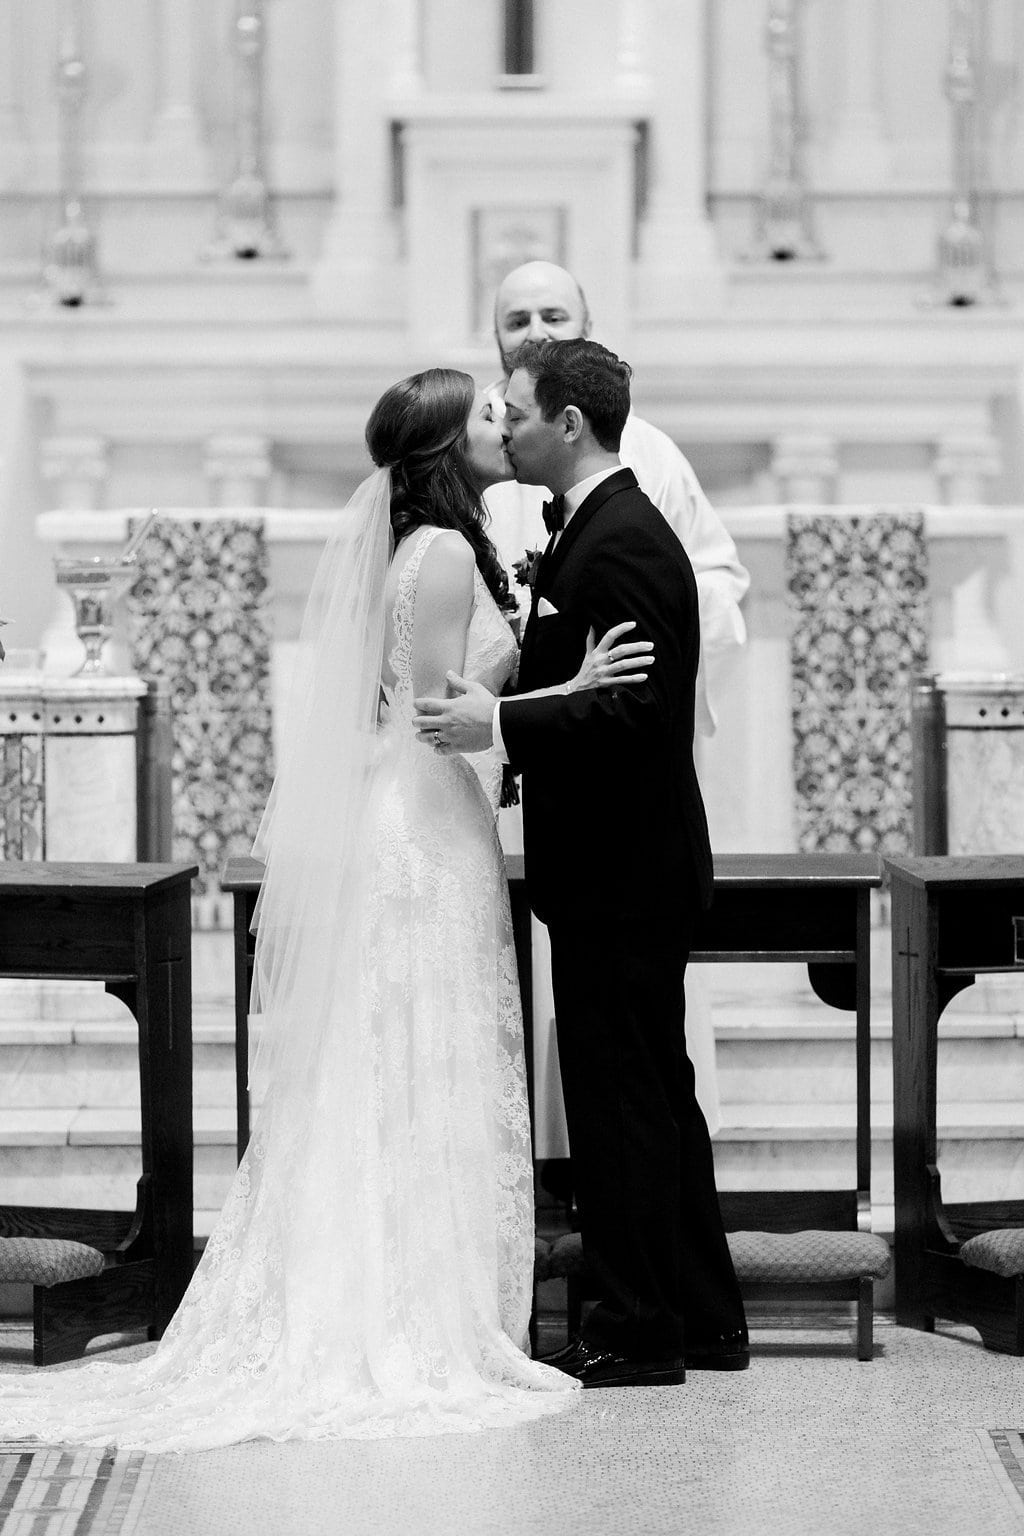 Bride and groom first kiss at the church altar